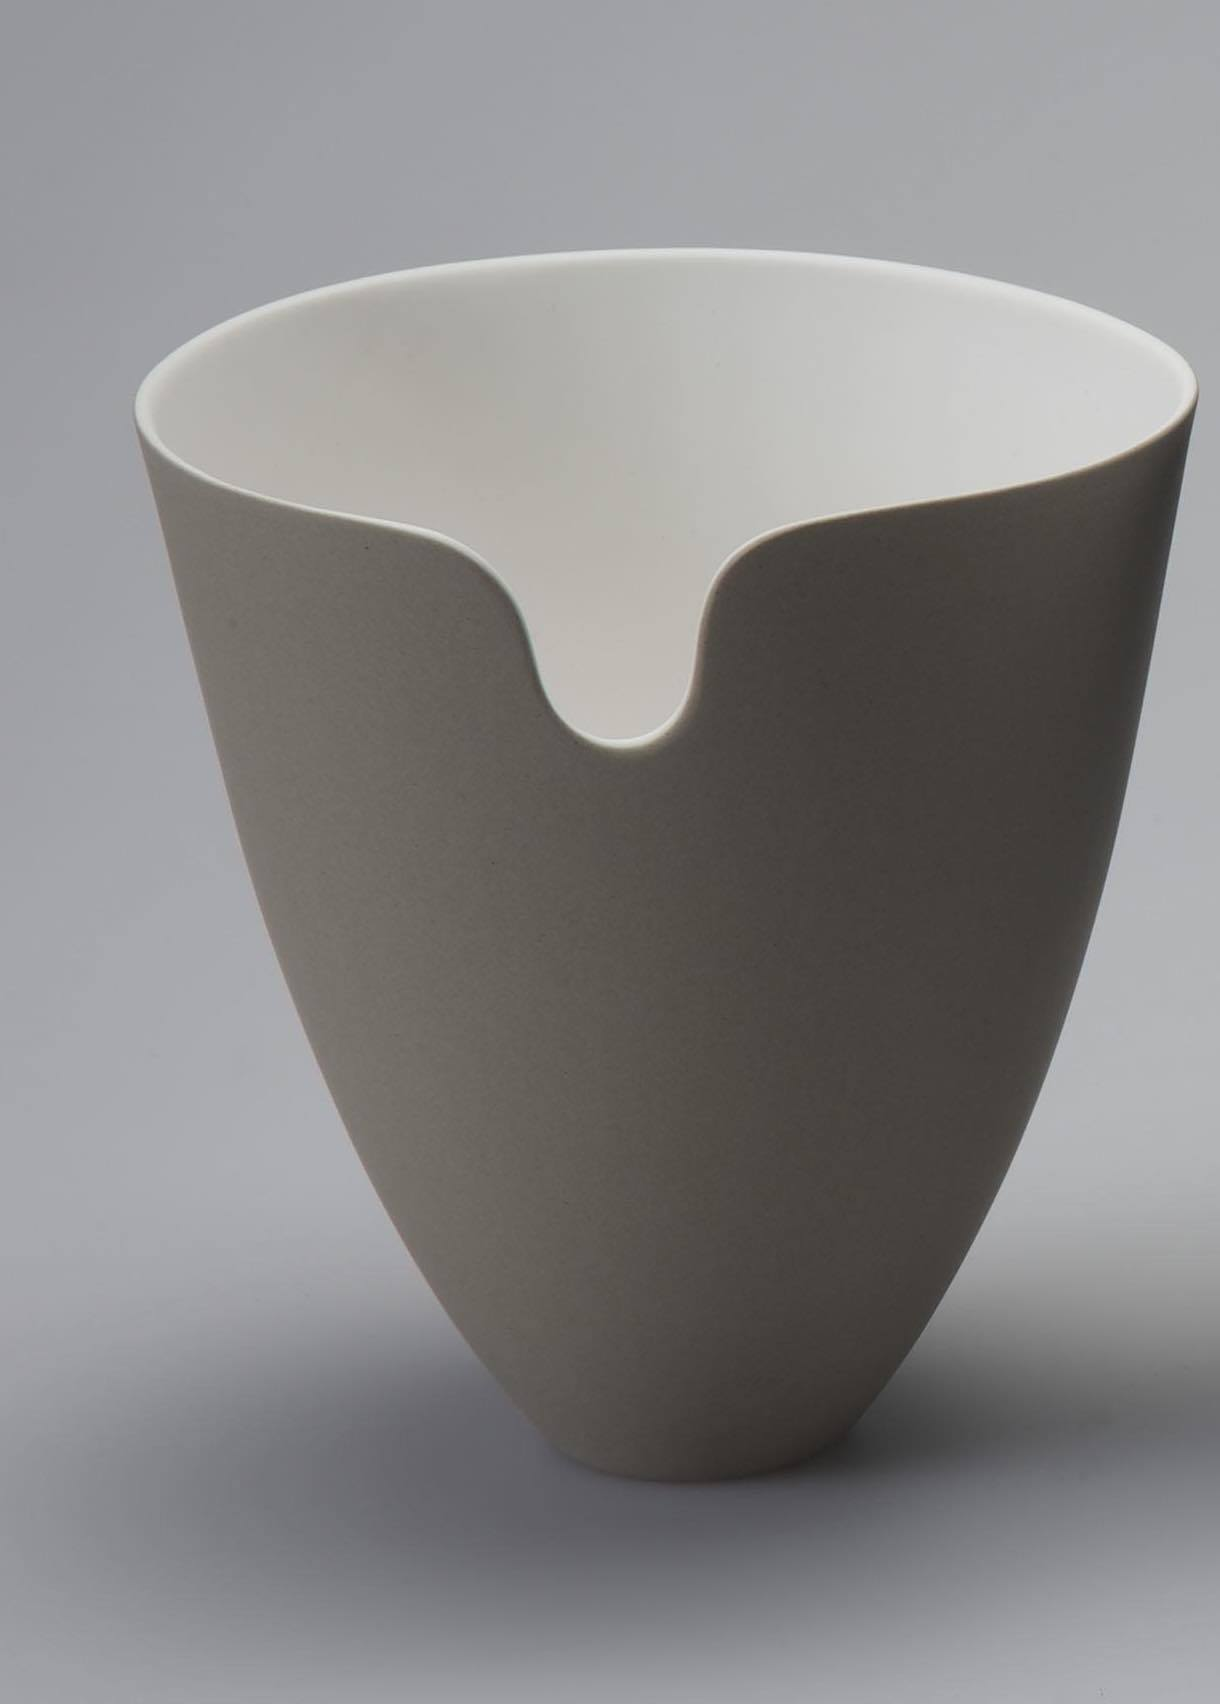 "<span class=""link fancybox-details-link""><a href=""/artists/60-sasha-wardell/works/5048-sasha-wardell-edge-vase-sepia-2017/"">View Detail Page</a></span><div class=""artist""><strong>Sasha Wardell</strong></div> <div class=""title""><em>Edge Vase - Sepia </em>, 2017</div> <div class=""copyright_line"">Copyright The Artist</div>"